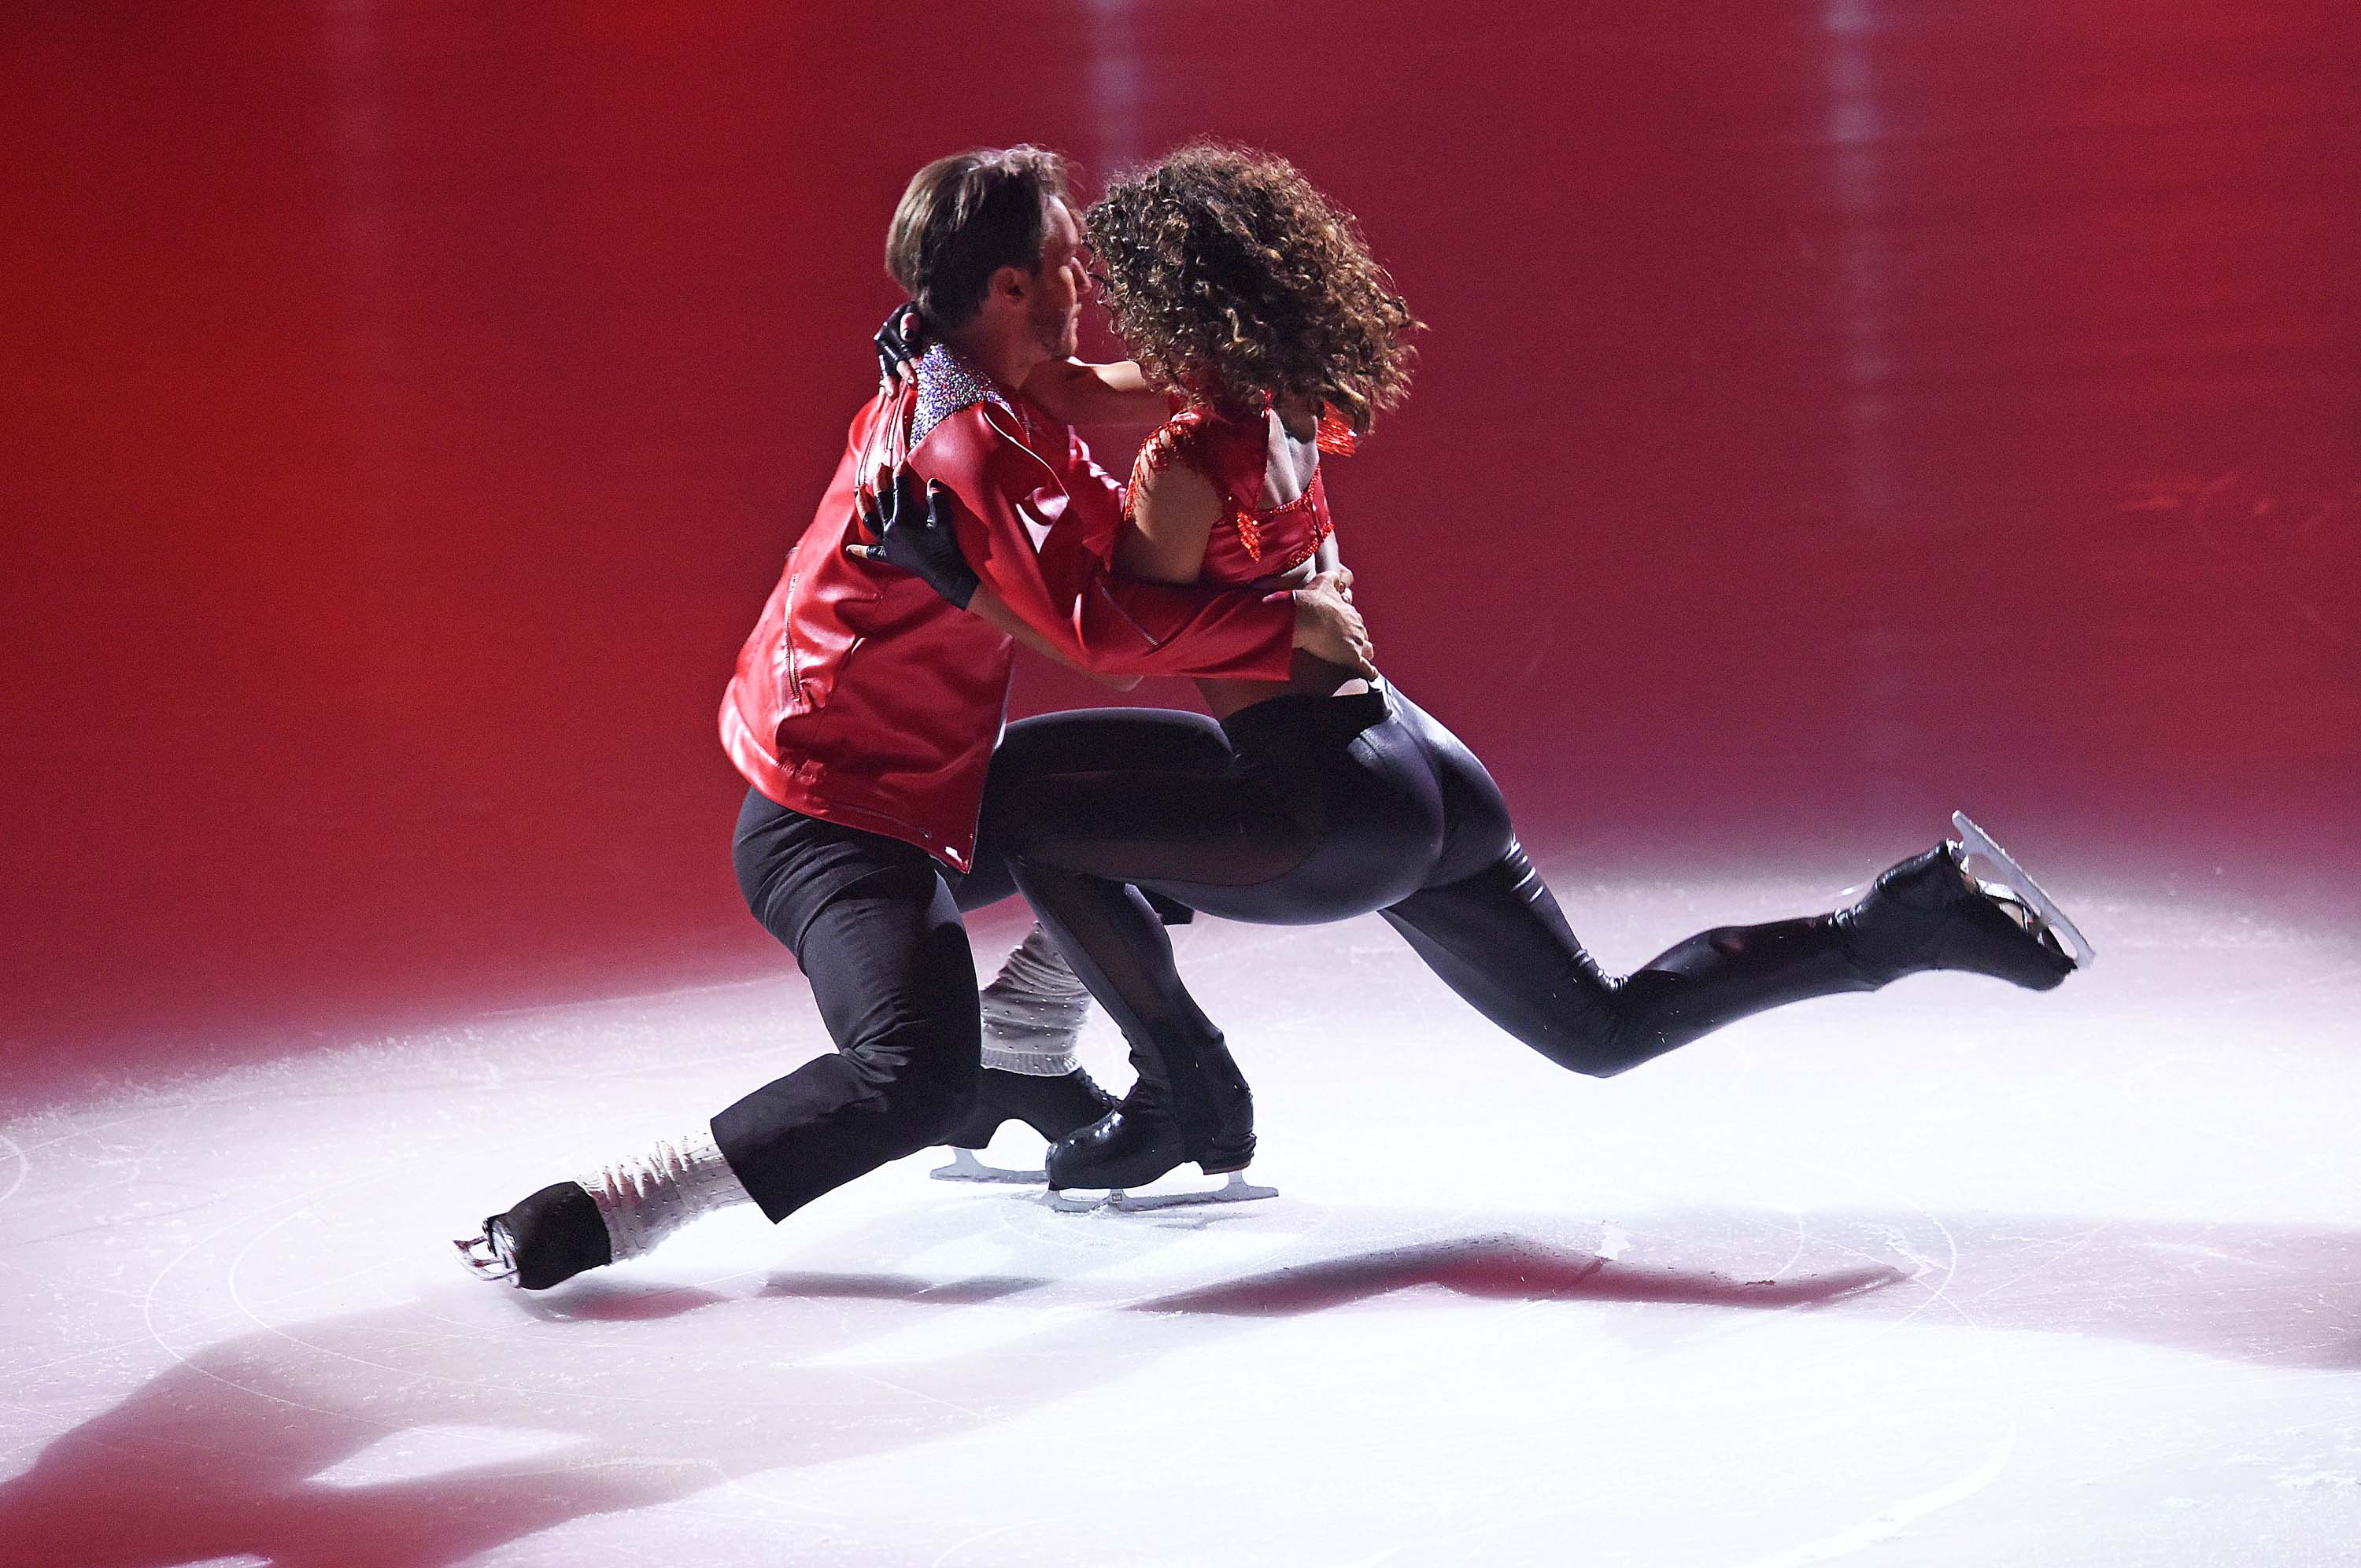 Sarah Lombardi attends Sat.1 Live TV Show 'Dancing on Ice'